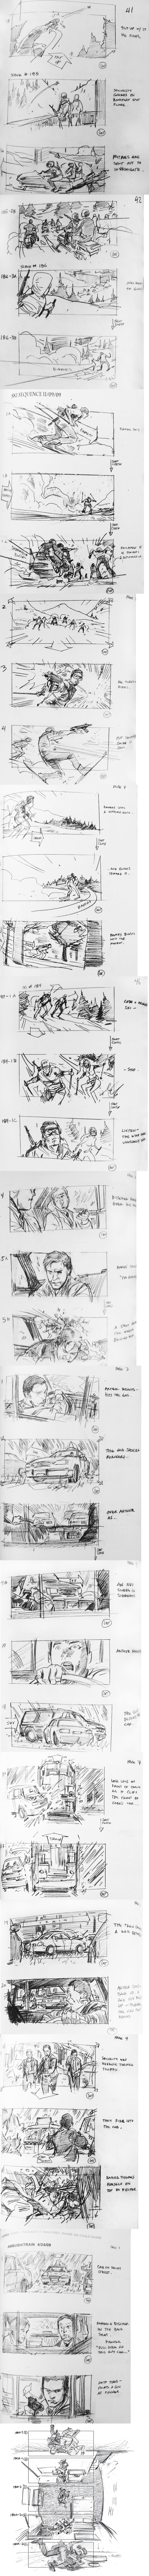 Gabriel Hardman Drawings Board Chris Nolan Inception    *Storyboard